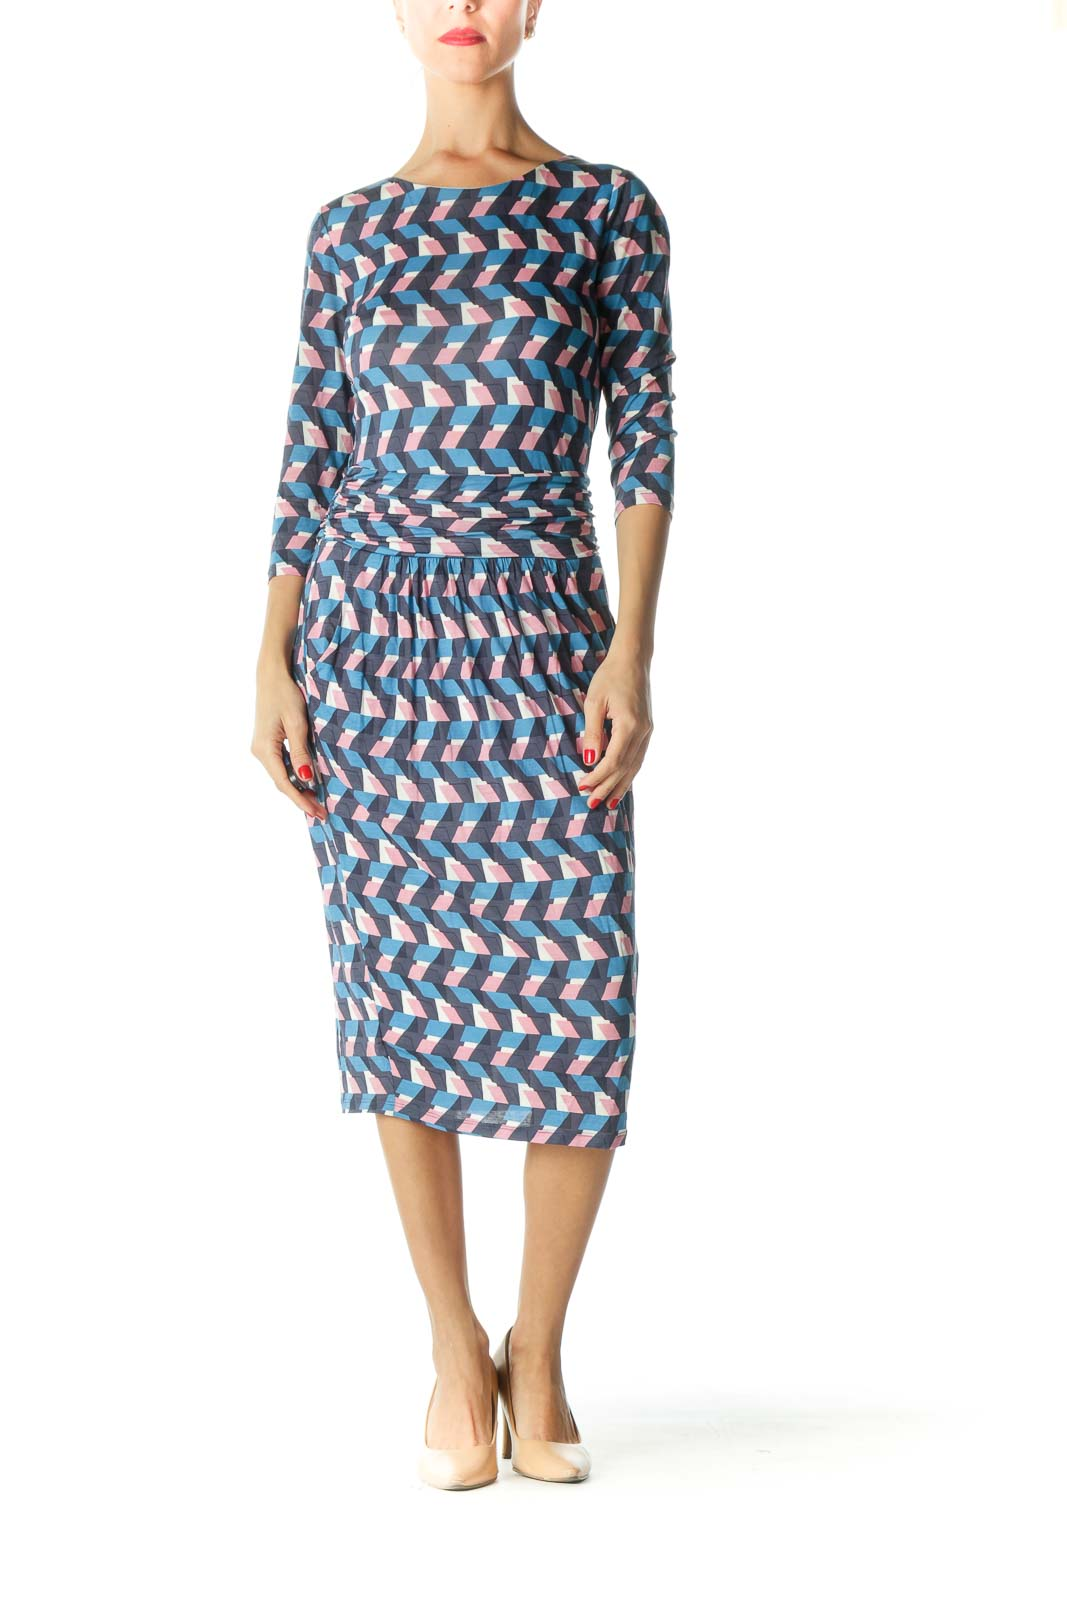 Blue Pink White 3/4 Sleeve Print Day Dress Front